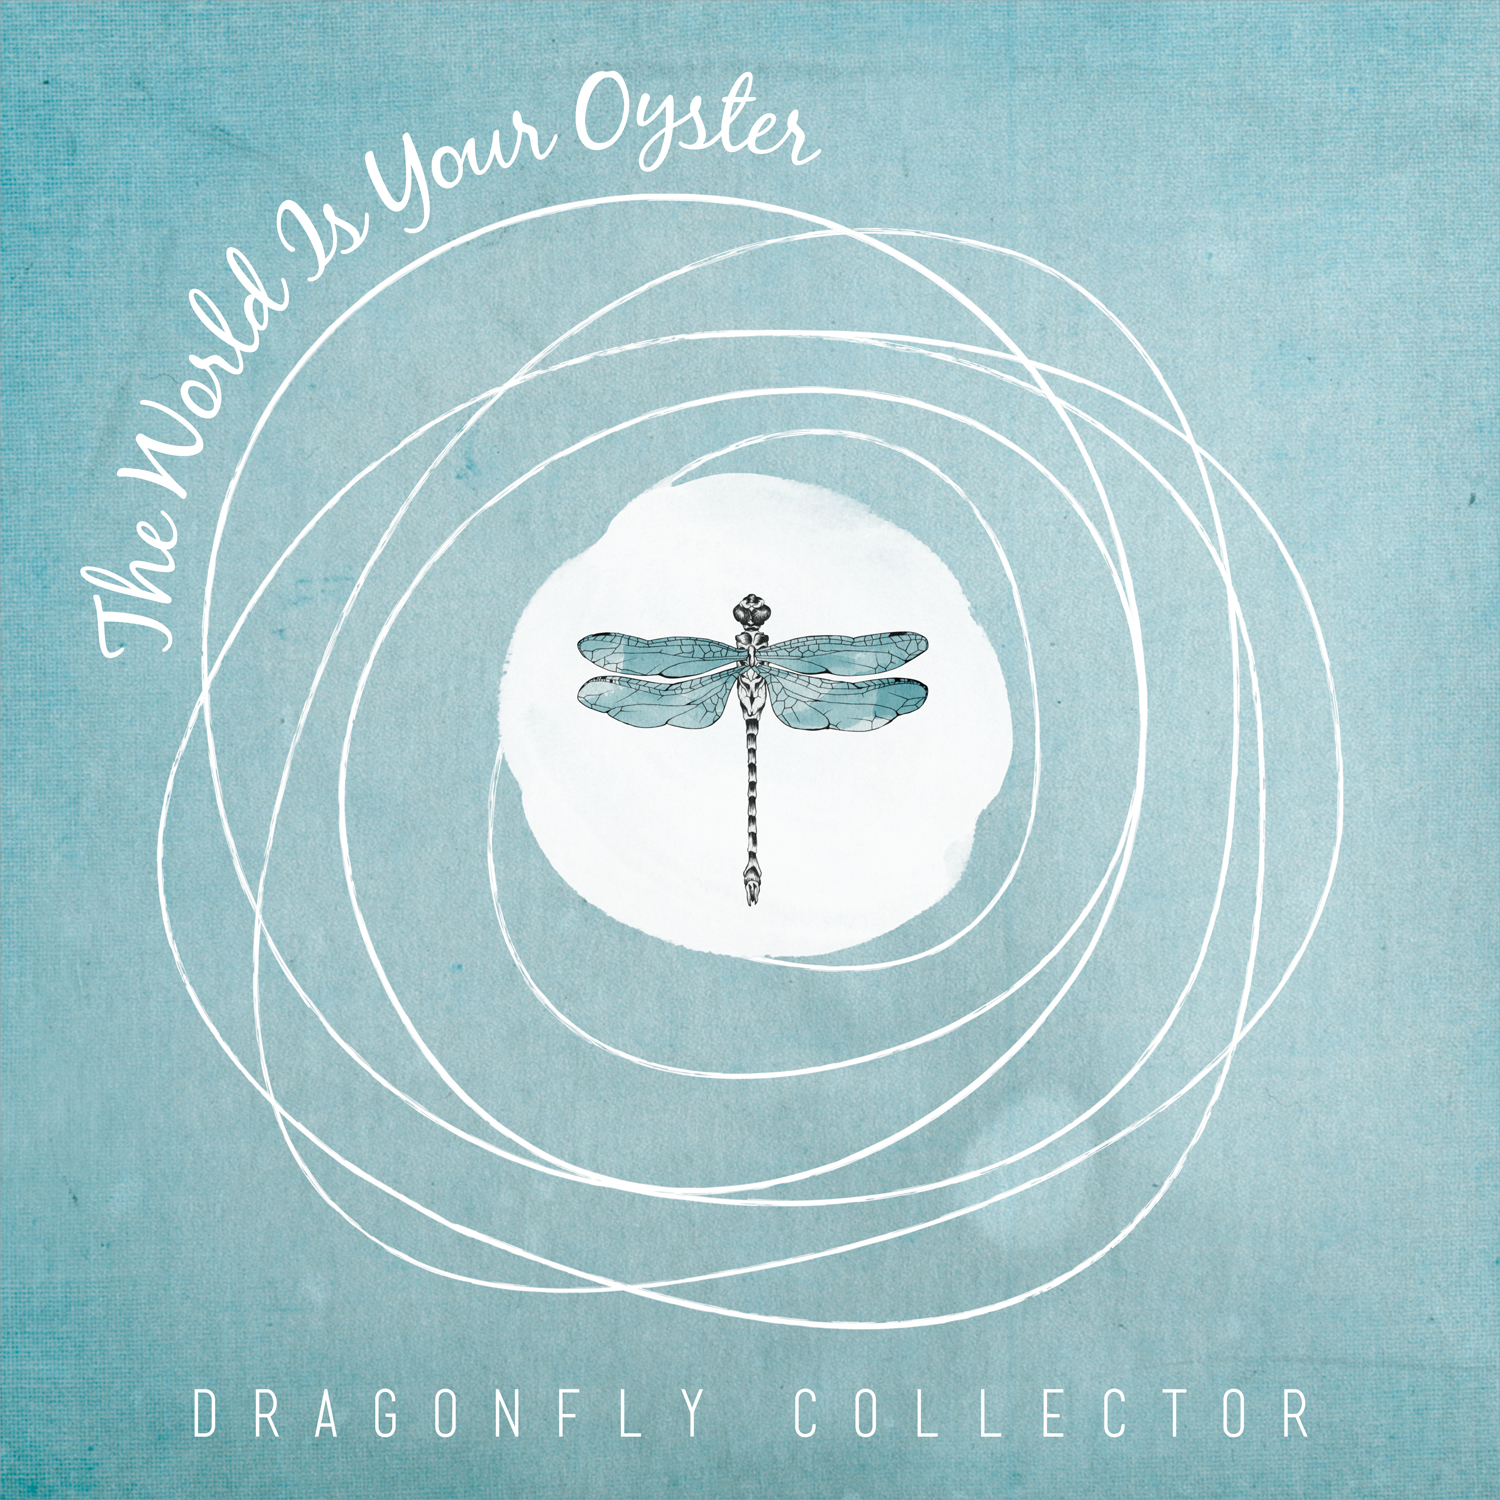 The World Is Your Oyster - Dragonfly Collector (CD Album)